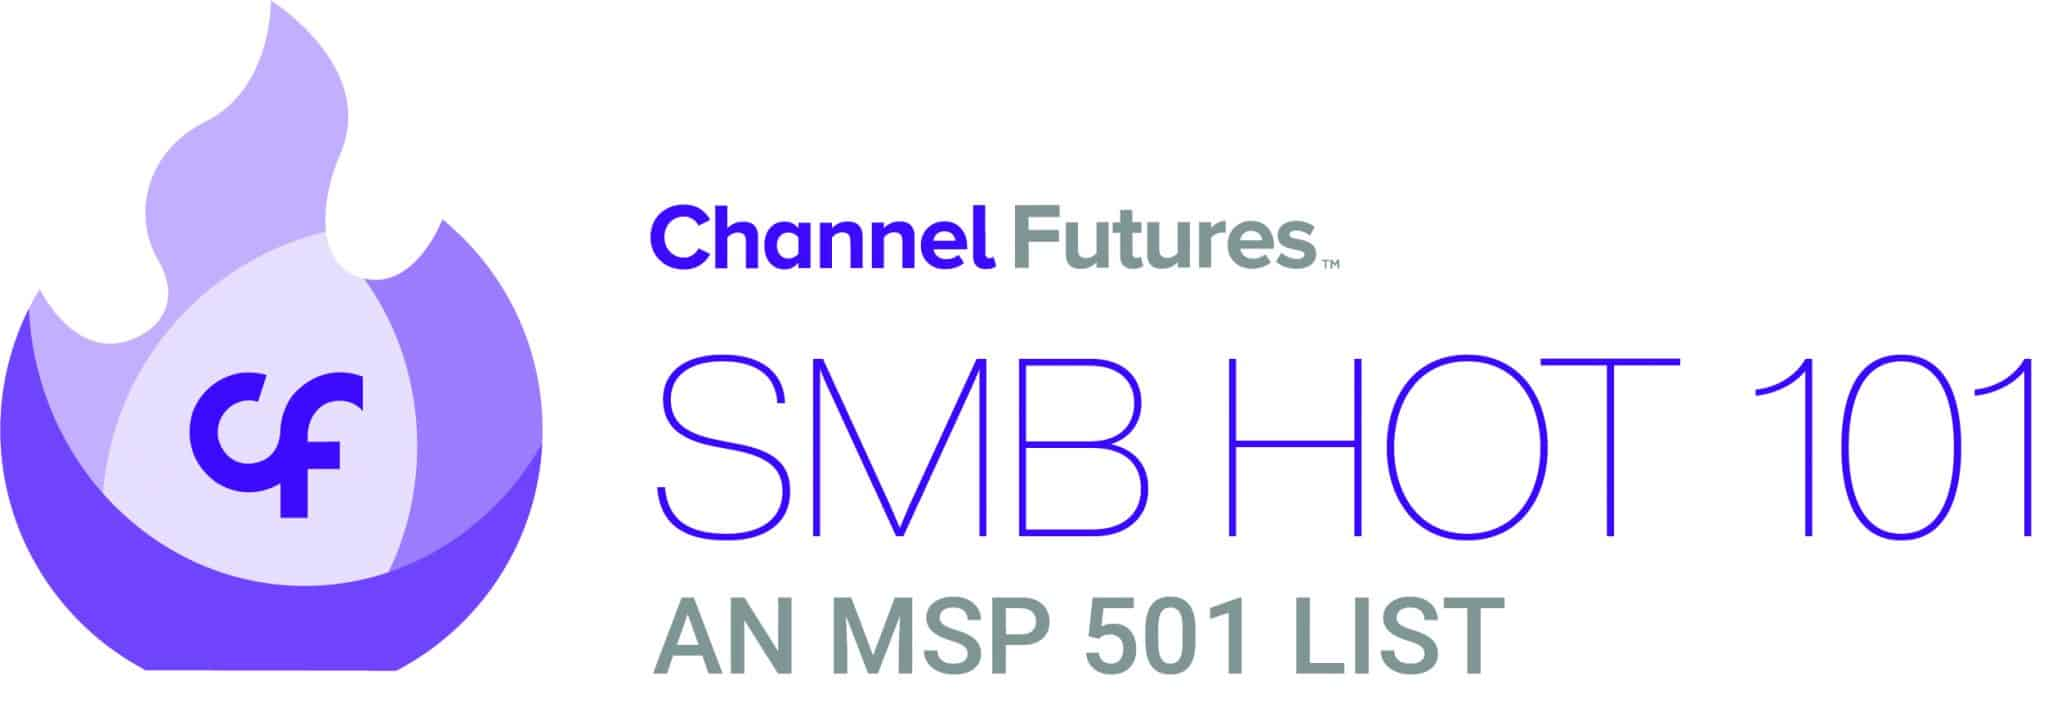 365 iT SOLUTIONS Ranked Among World's Best 101 SMB Managed Service Providers 2